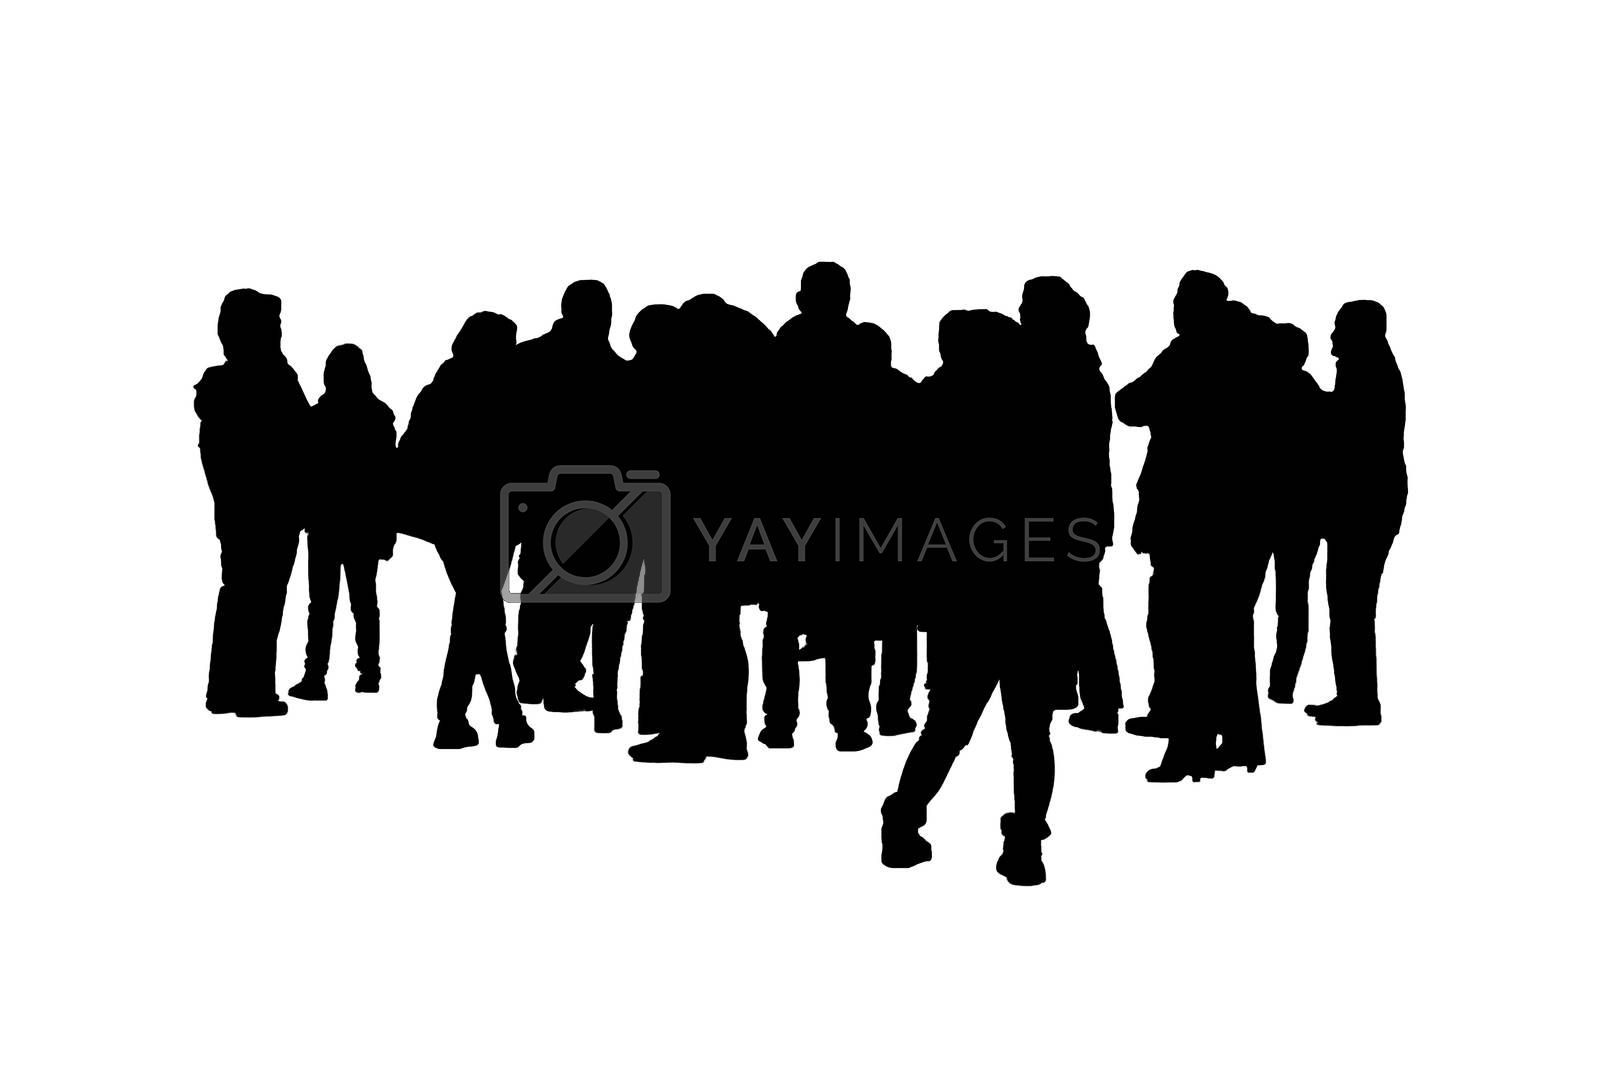 Panoramic isolated graphic silhouette of a group of standing people over white background